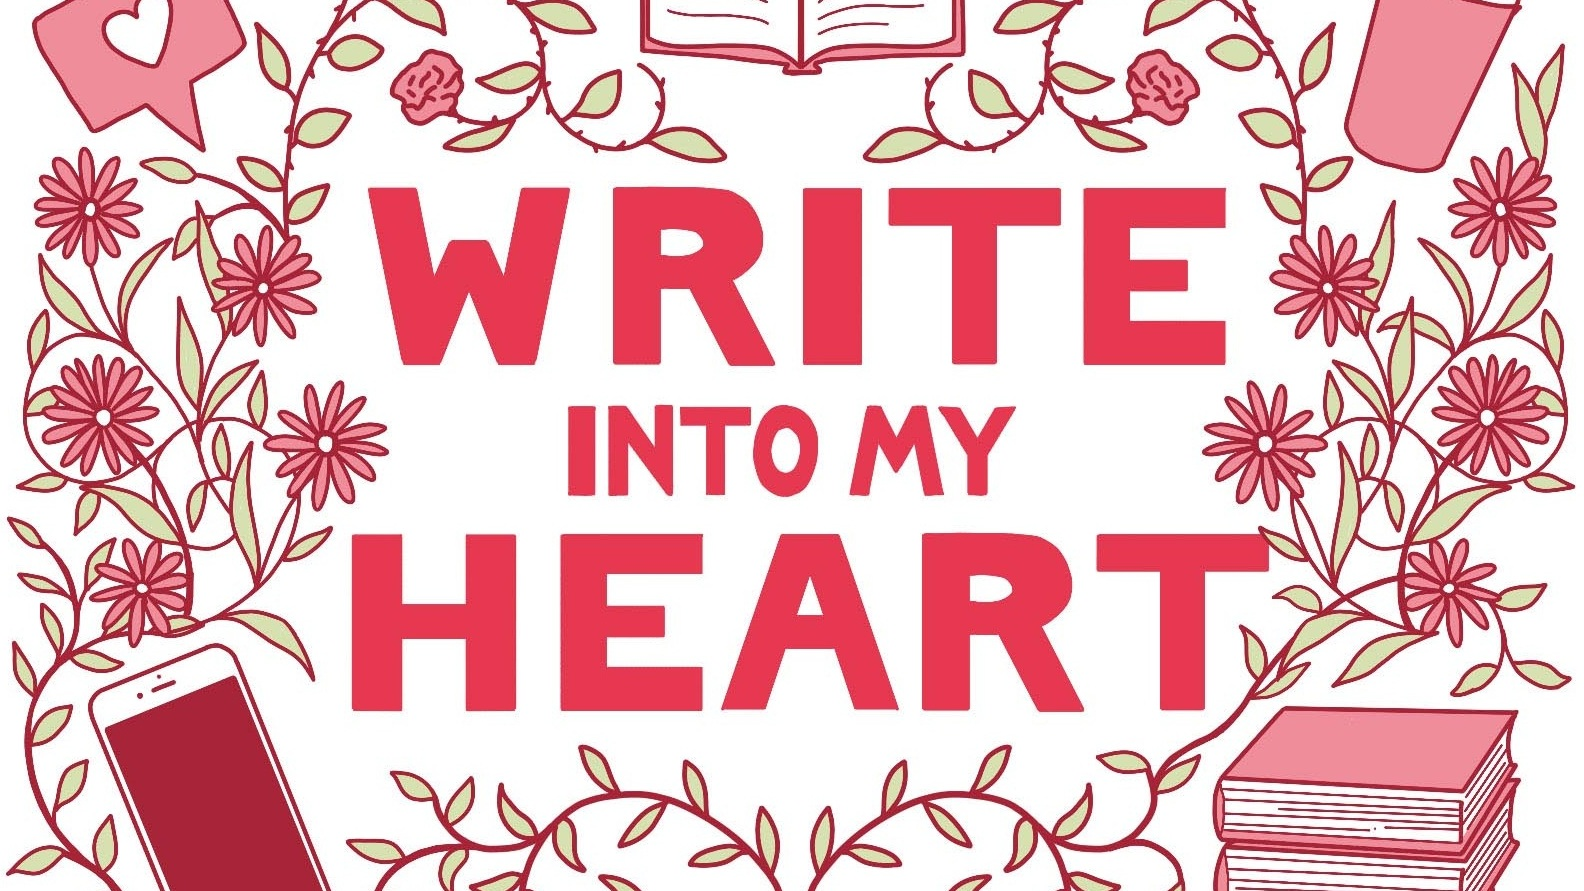 Or, take a look at this case study: - Write Into My Heart